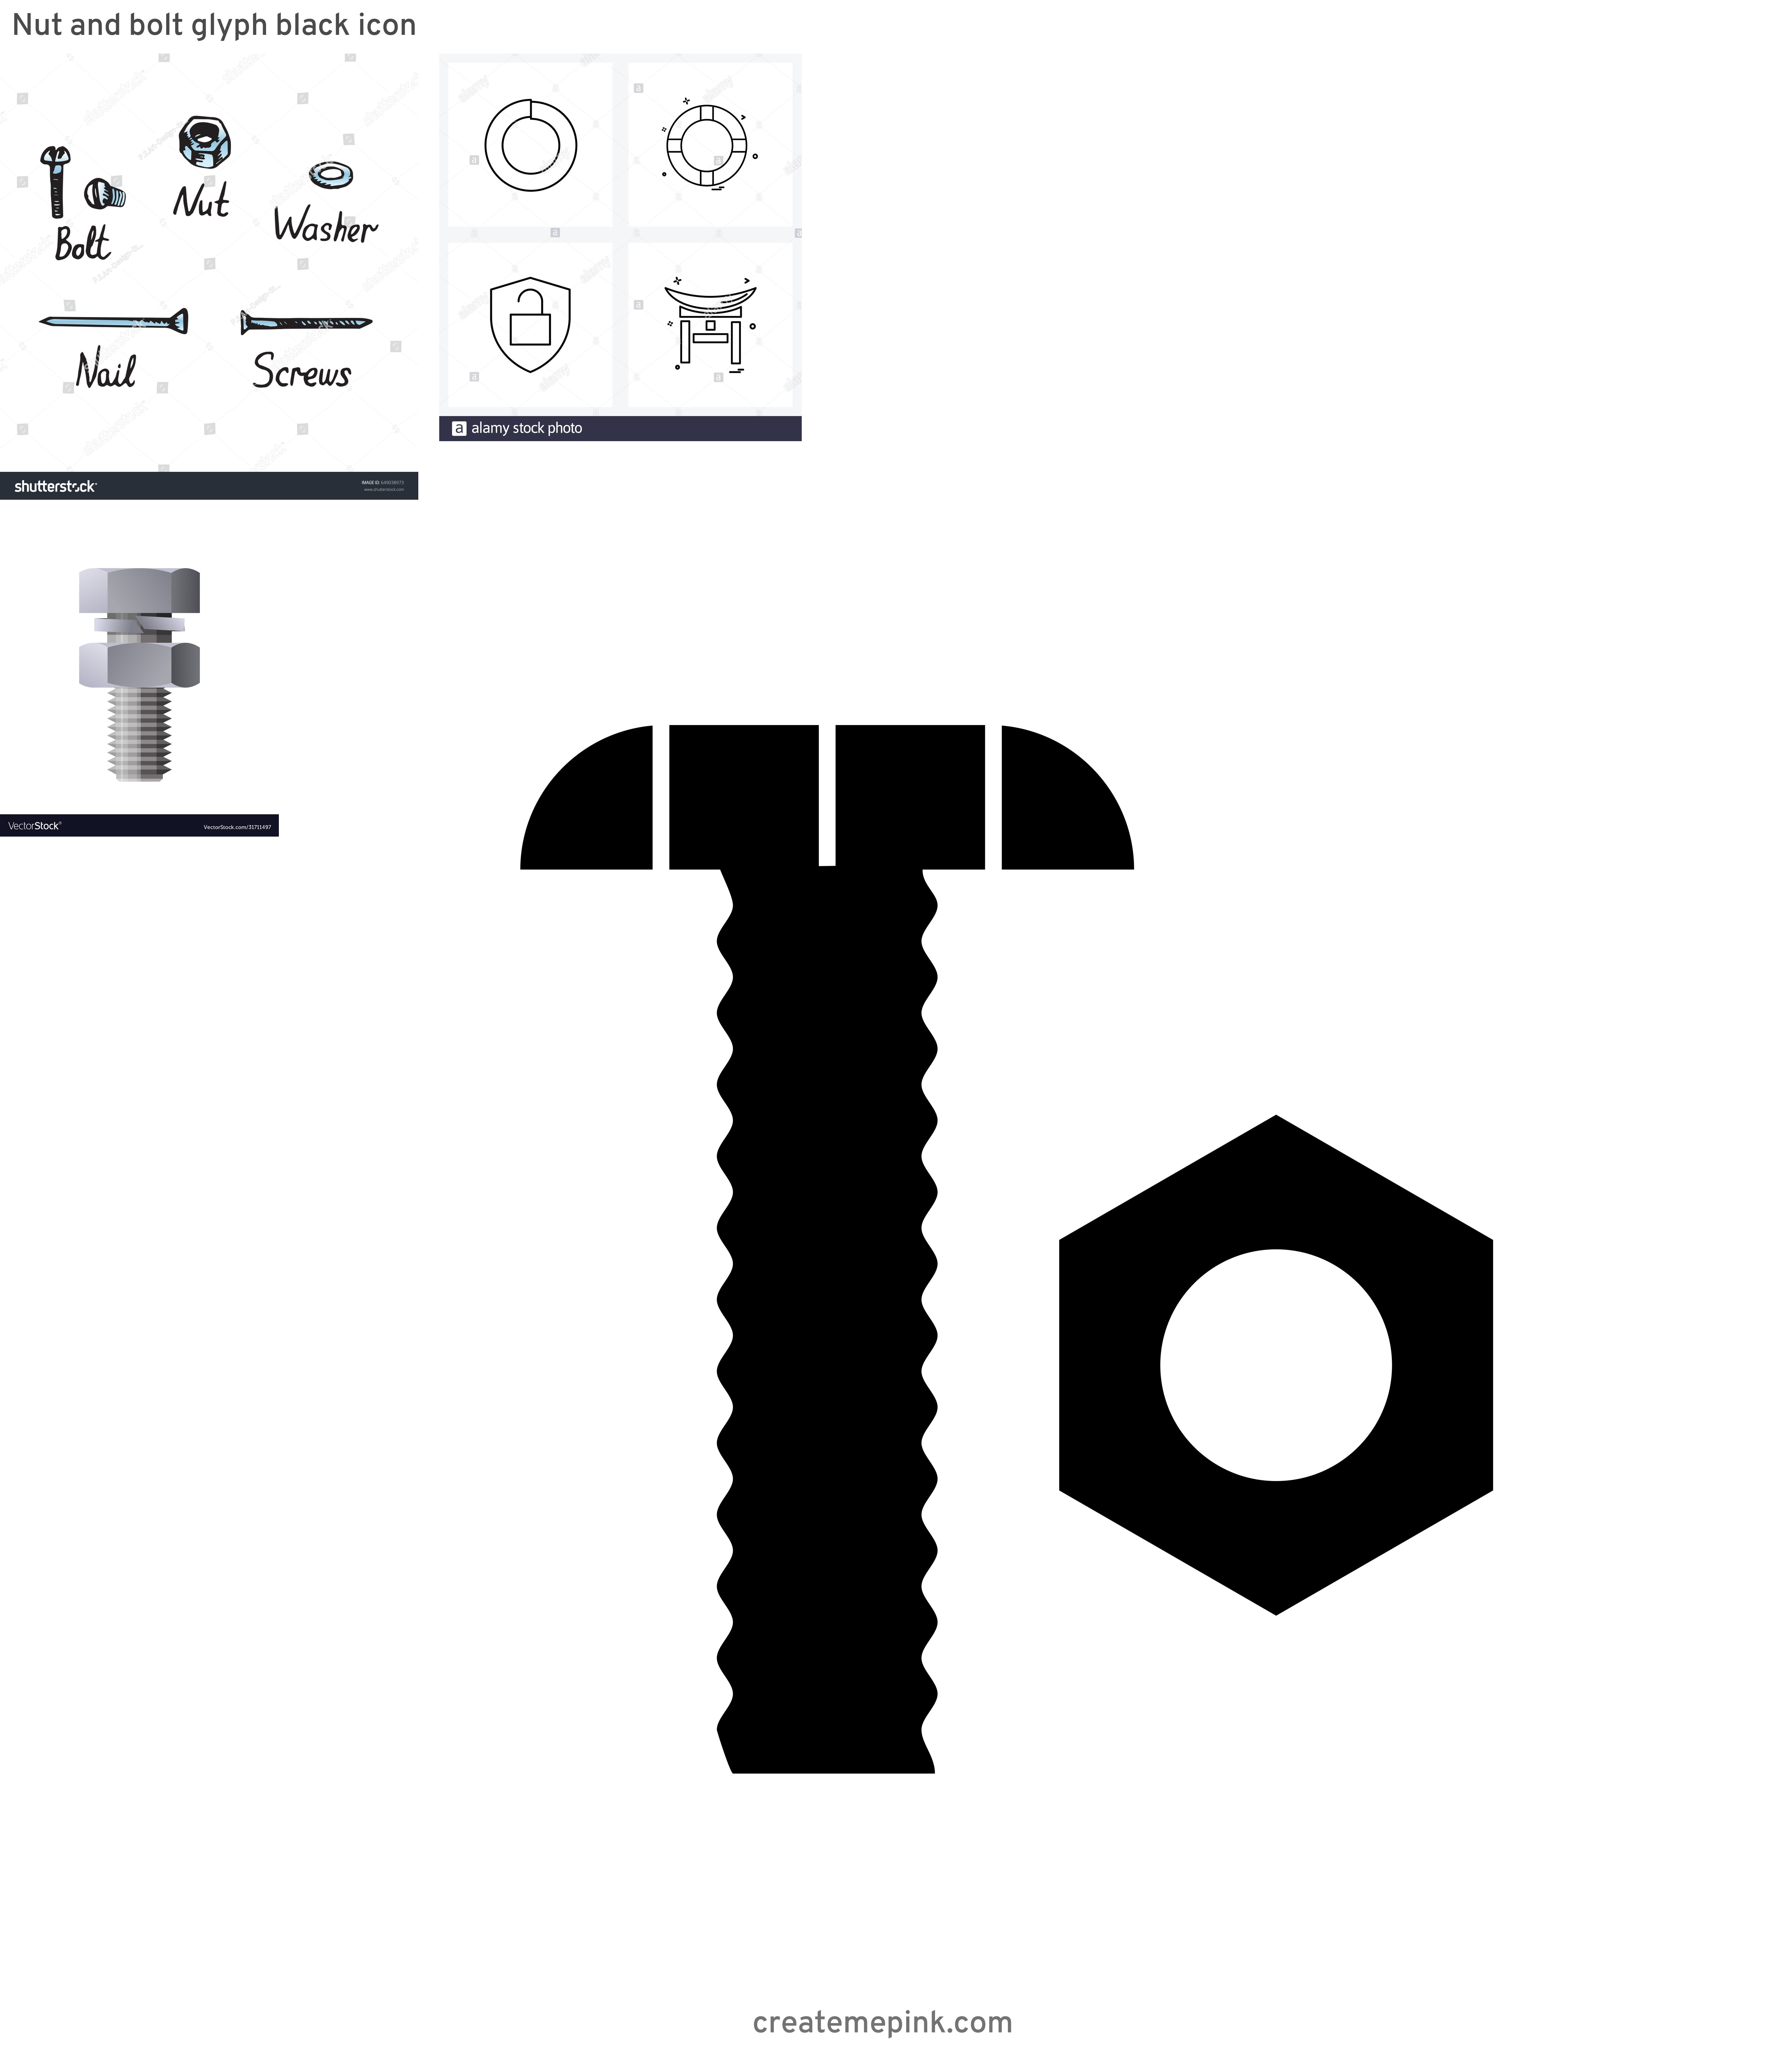 White Washer Bolt Vector: Nut And Bolt Glyph Black Icon